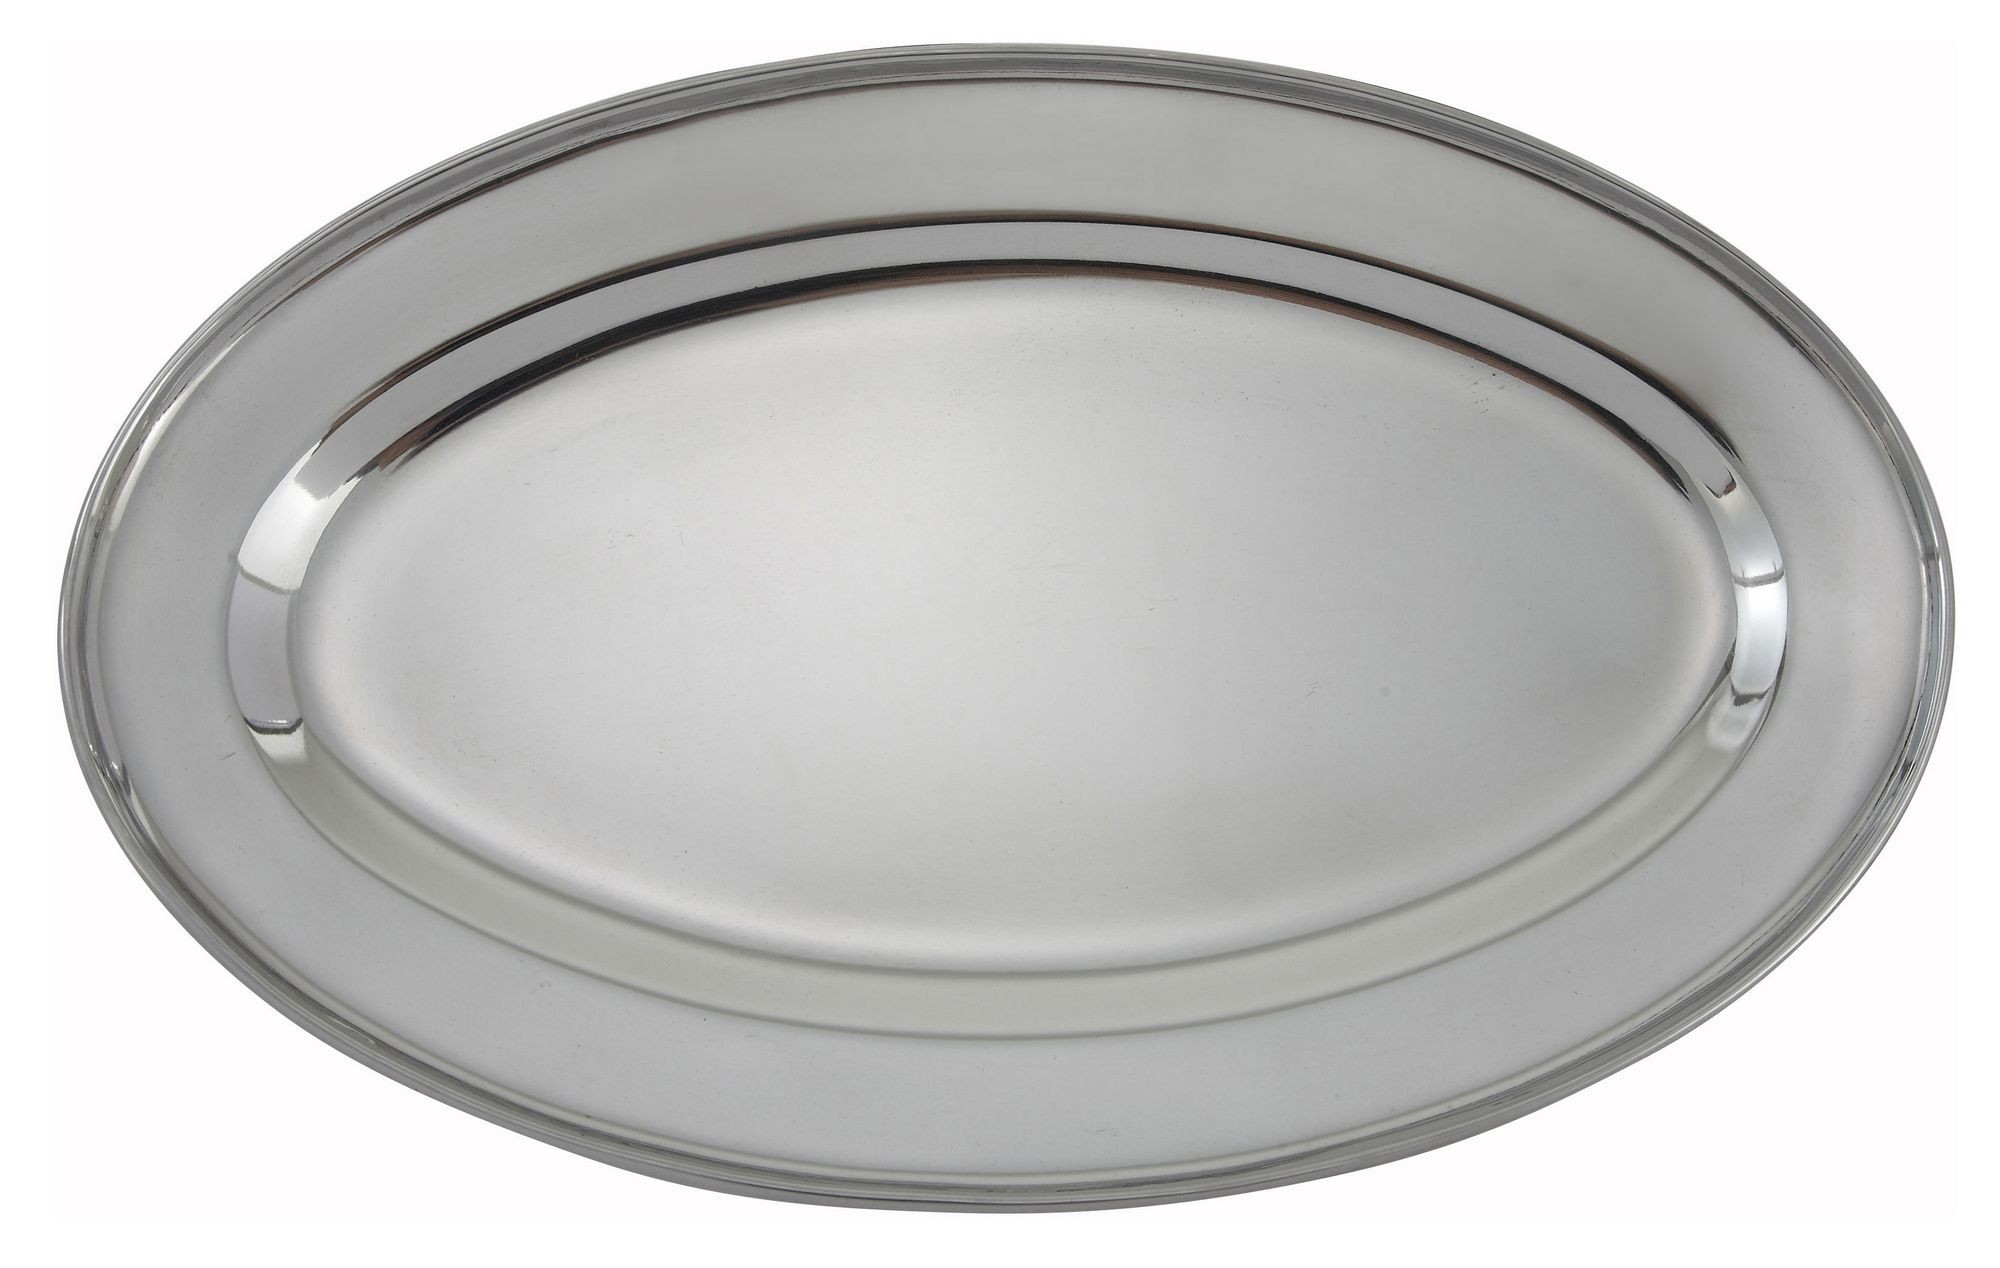 Heavy Stainless Steel Oval Platter - 12 X 8-5/8